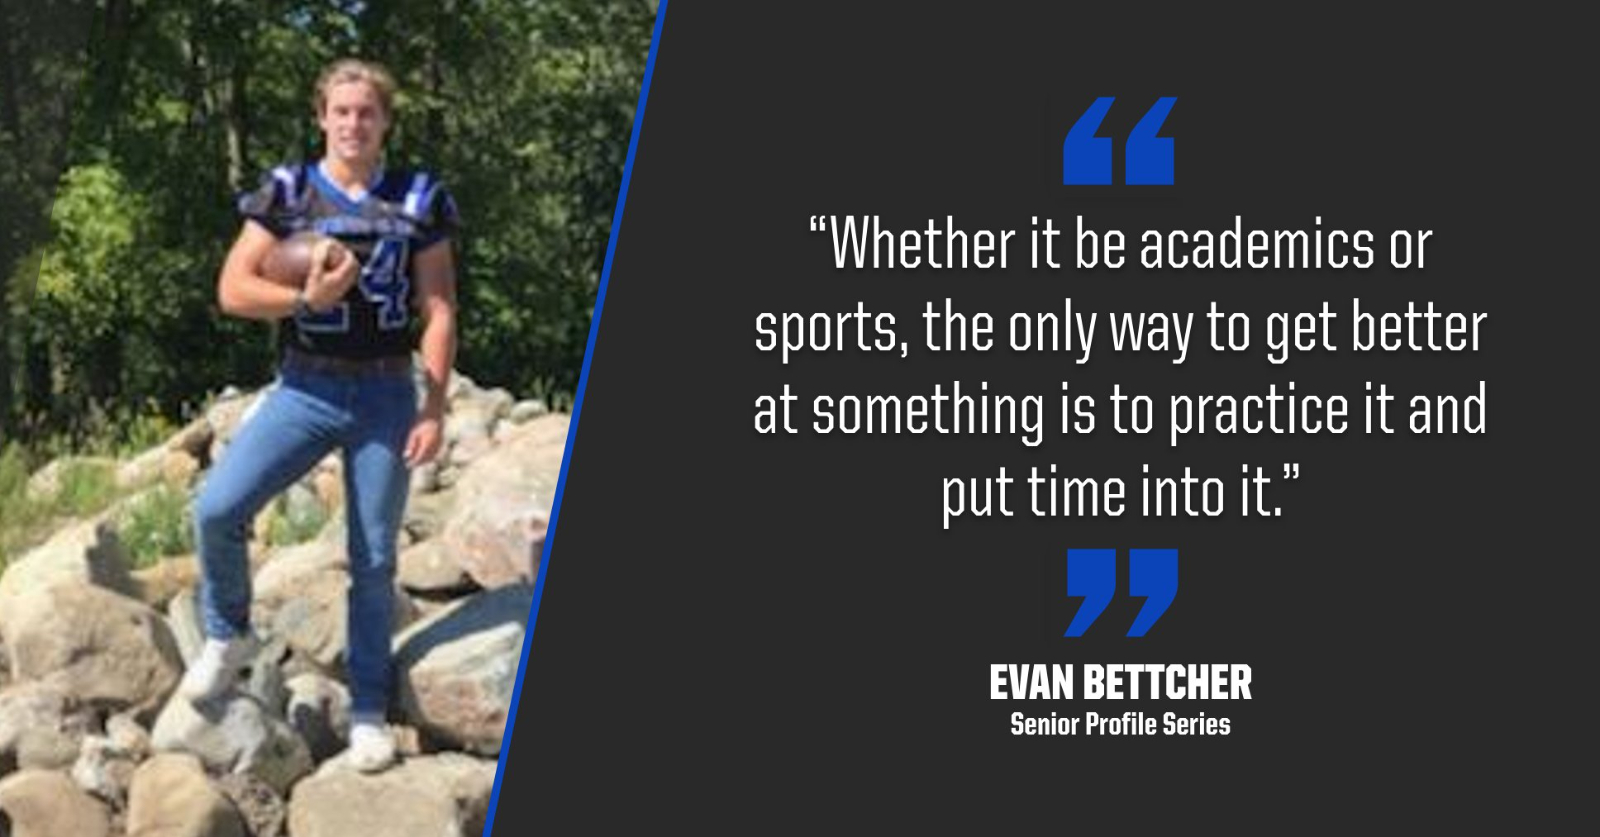 """EVAN BETTCHER: """". . . The Only Way To Get Better At Something Is To Practice It And Put Time Into It."""""""